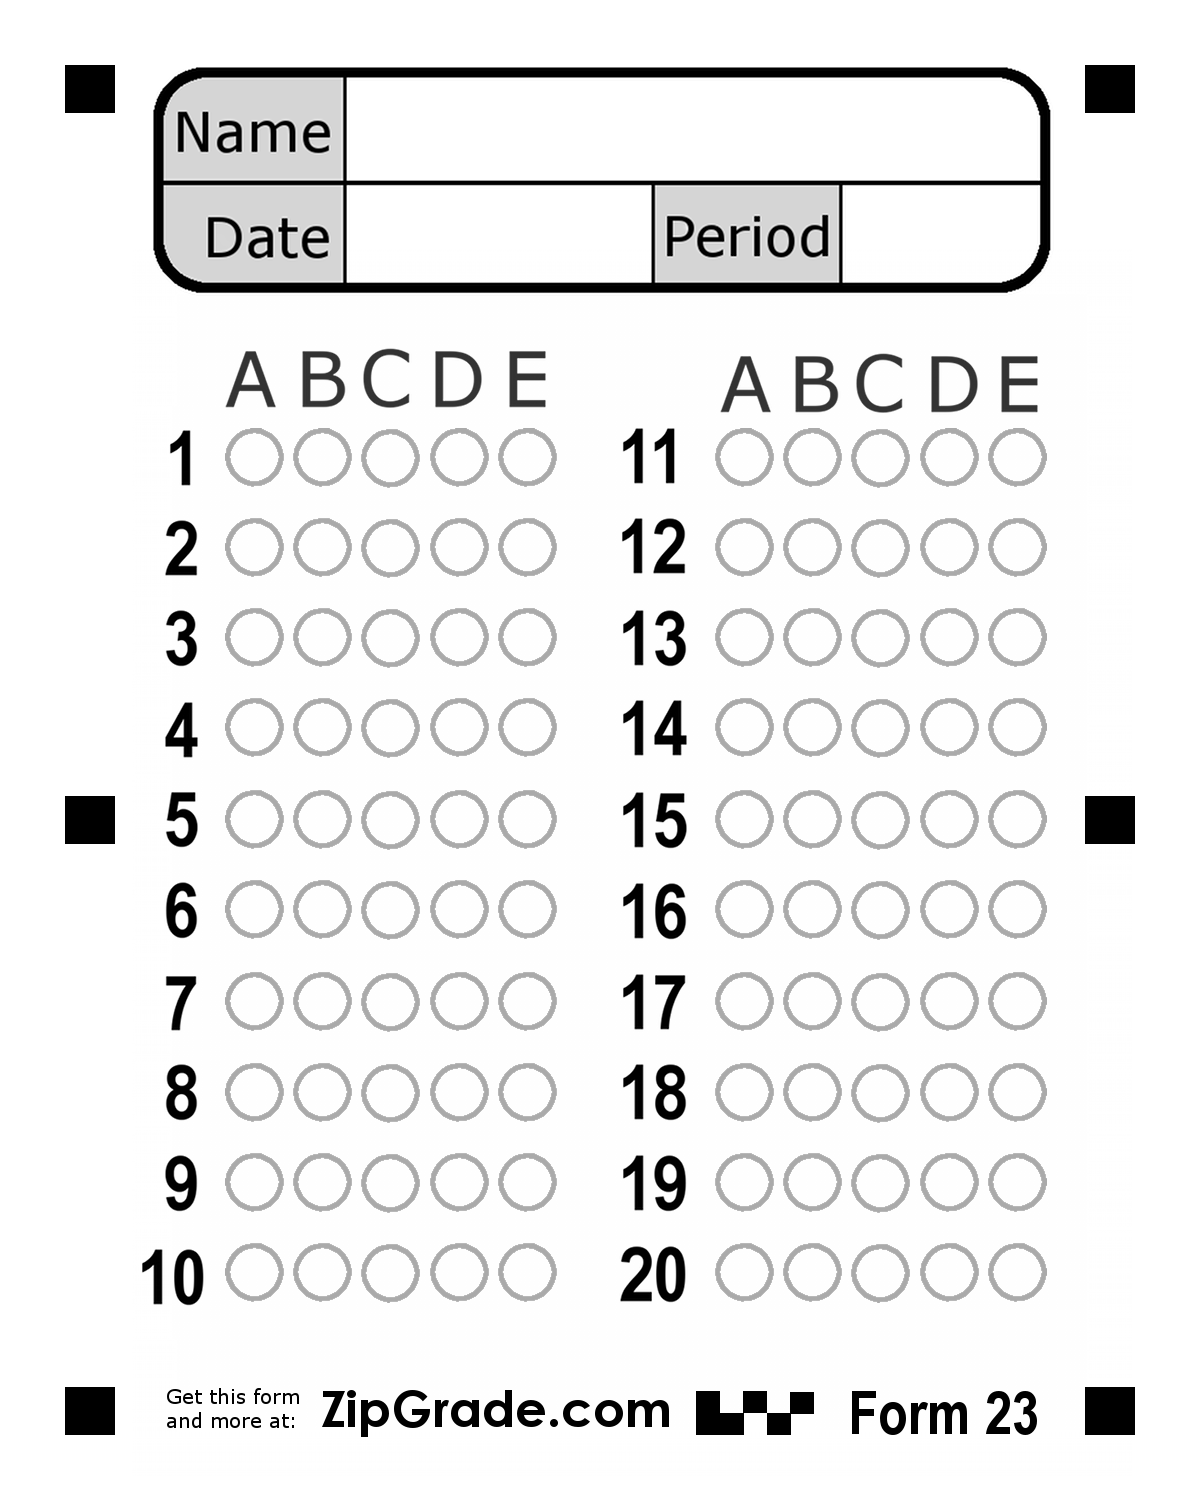 image about Free Printable Scantron Bubble Sheet identified as Bubble Solution Sheet 1-50 100 Wonder Bubble Solution Sheet